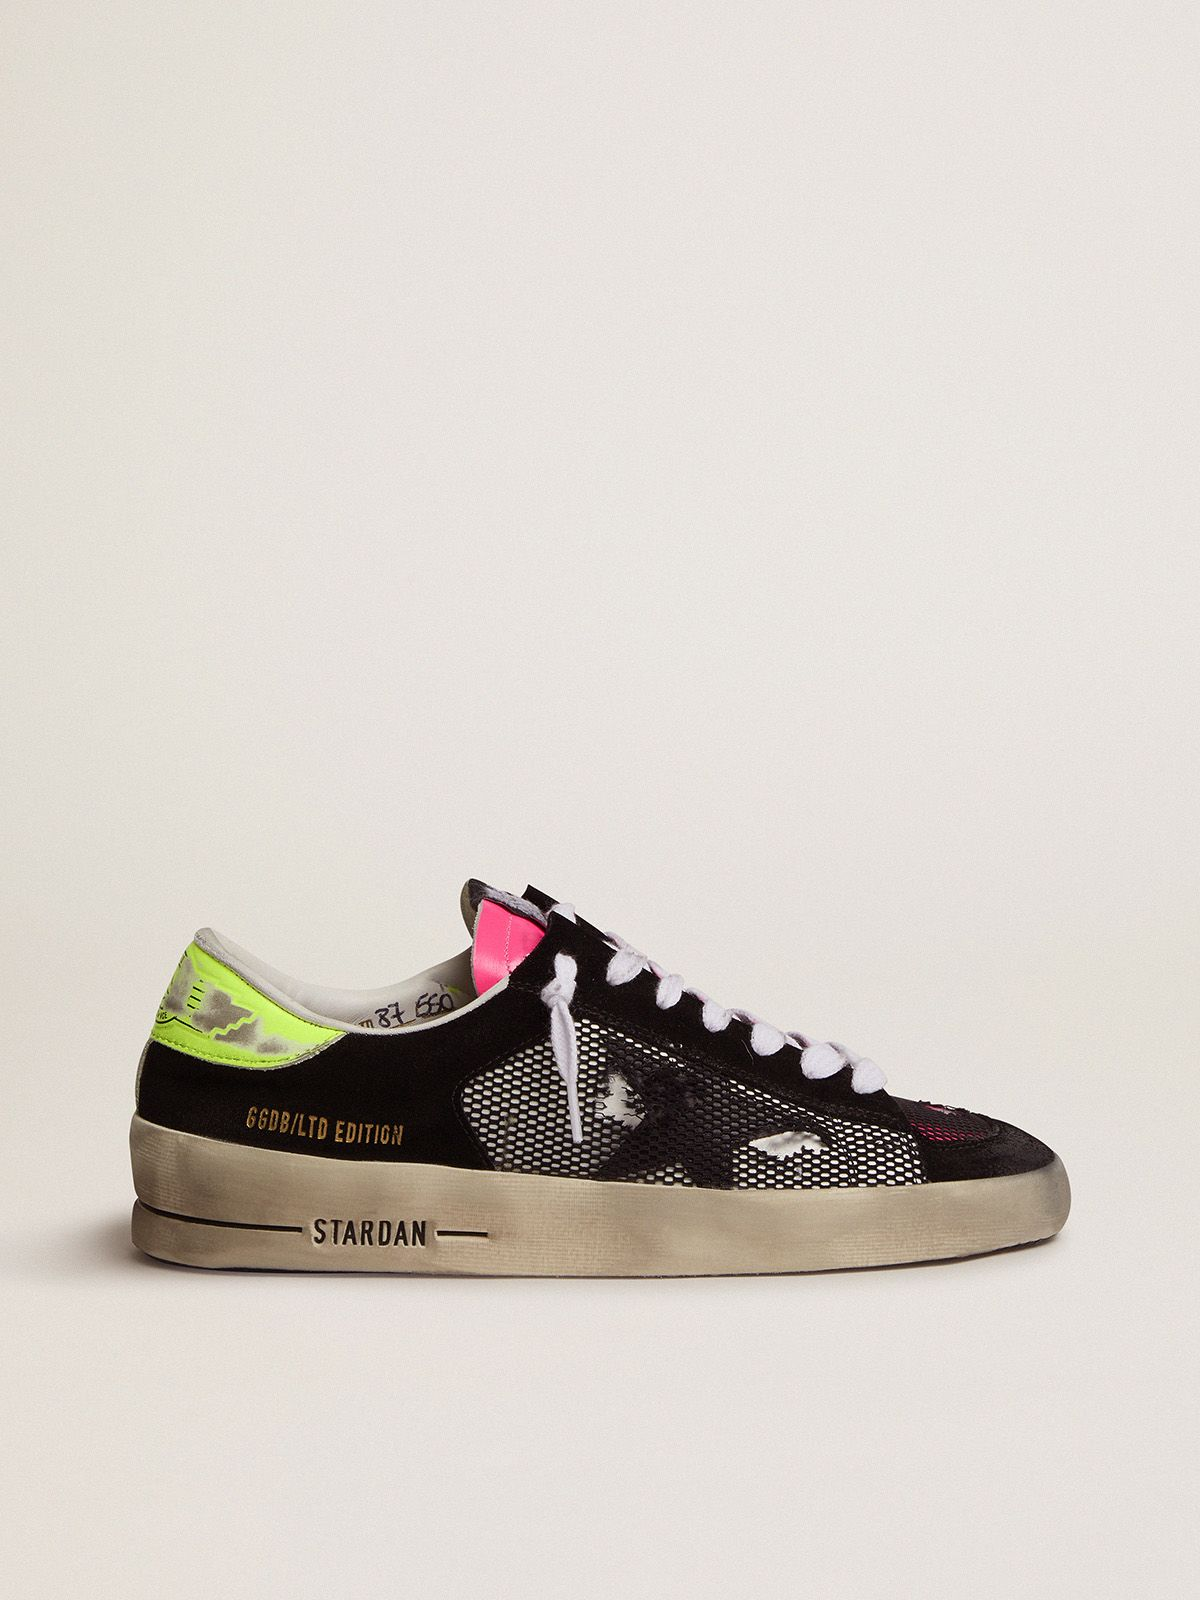 Golden Goose - Women's Limited Edition Stardan sneakers in fuchsia and yellow in